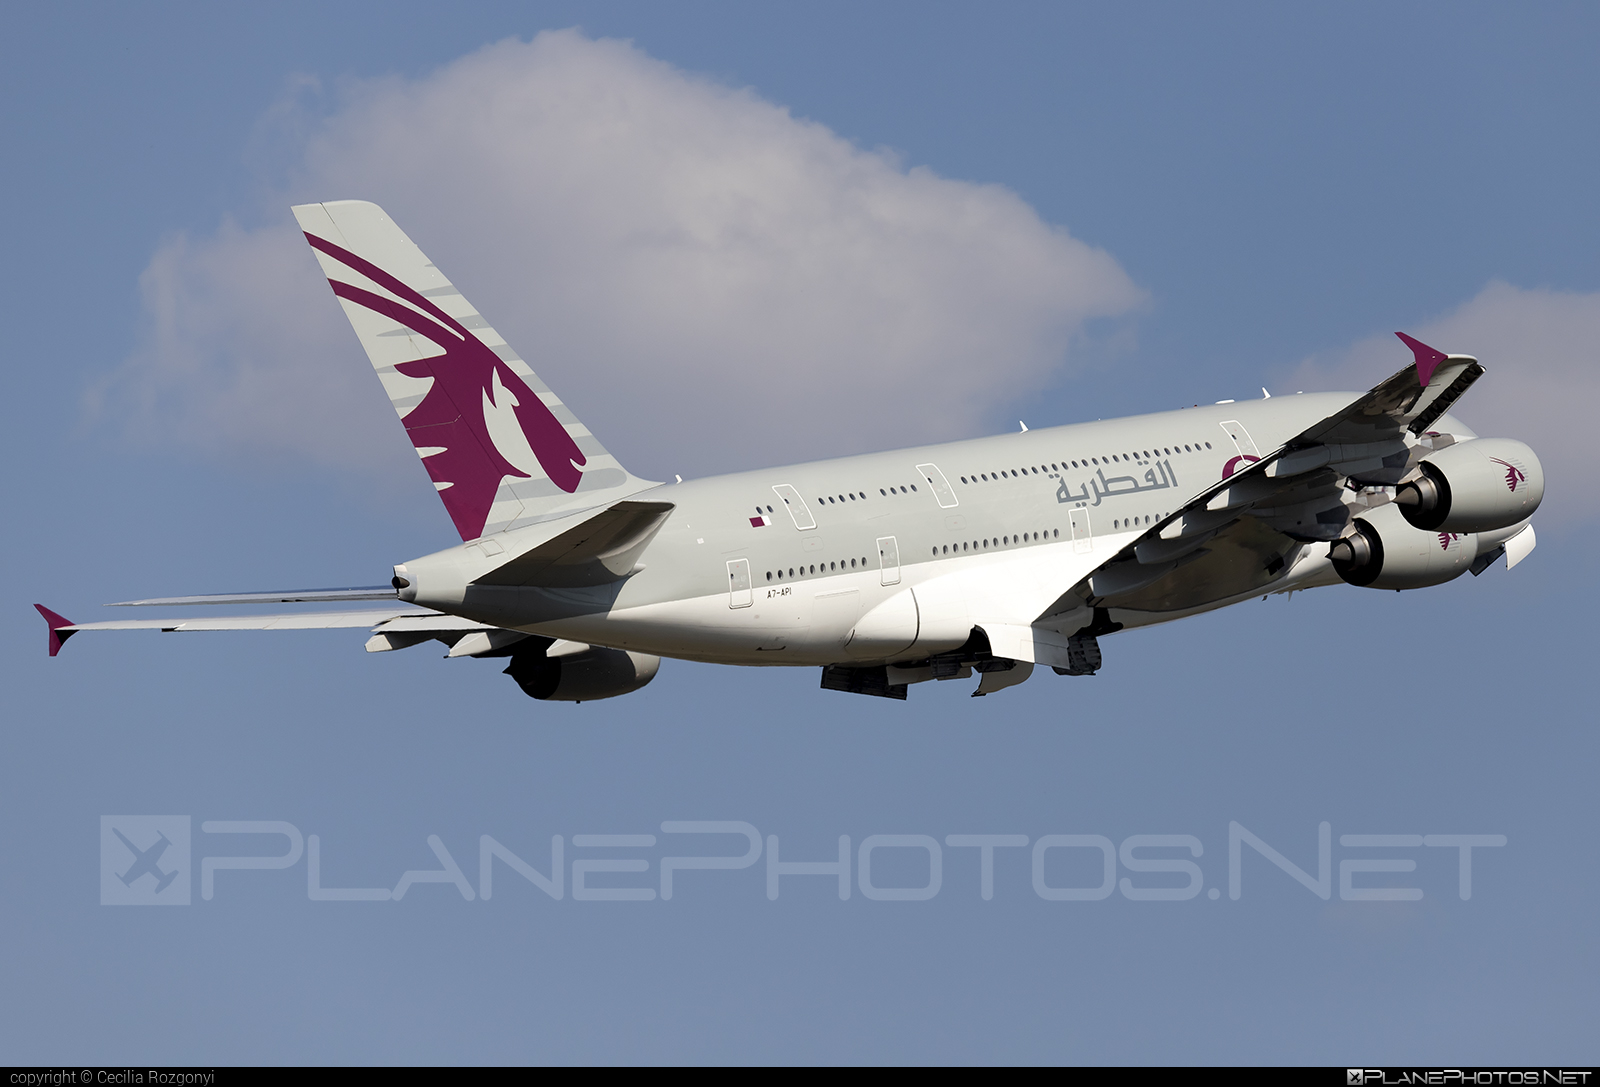 Airbus A380-861 - A7-API operated by Qatar Airways #a380 #a380family #airbus #airbus380 #qatarairways